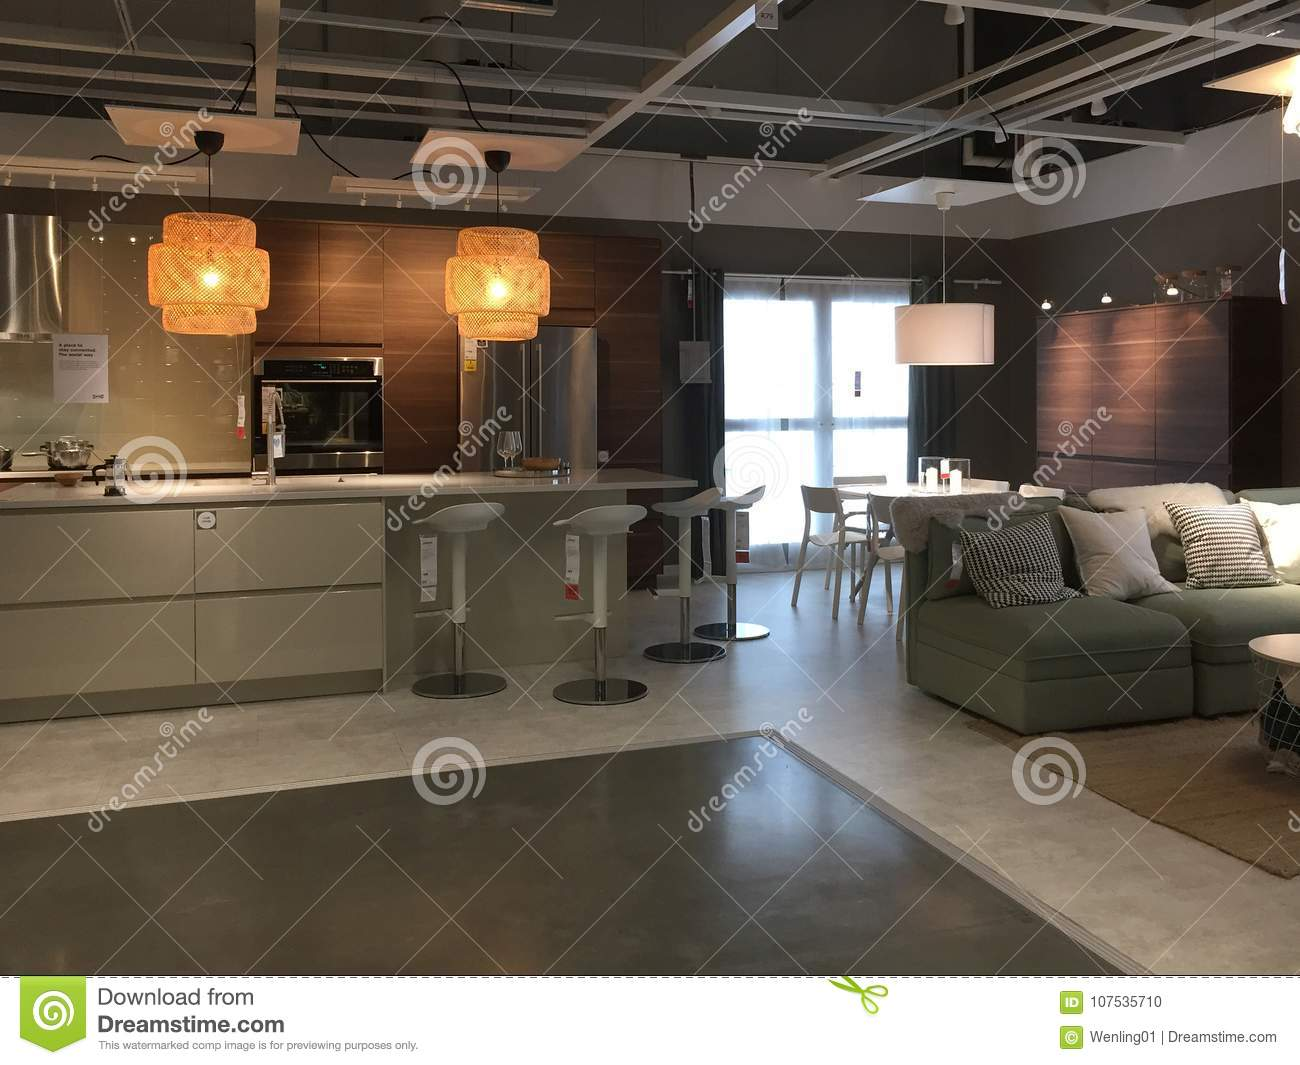 home and kitchen stores countertop ideas on a budget 在装备的商店宜家的现代厨房和家庭娱乐室设计编辑类图片 图片包括有家具 在装备的商店宜家的现代厨房和家庭娱乐室设计